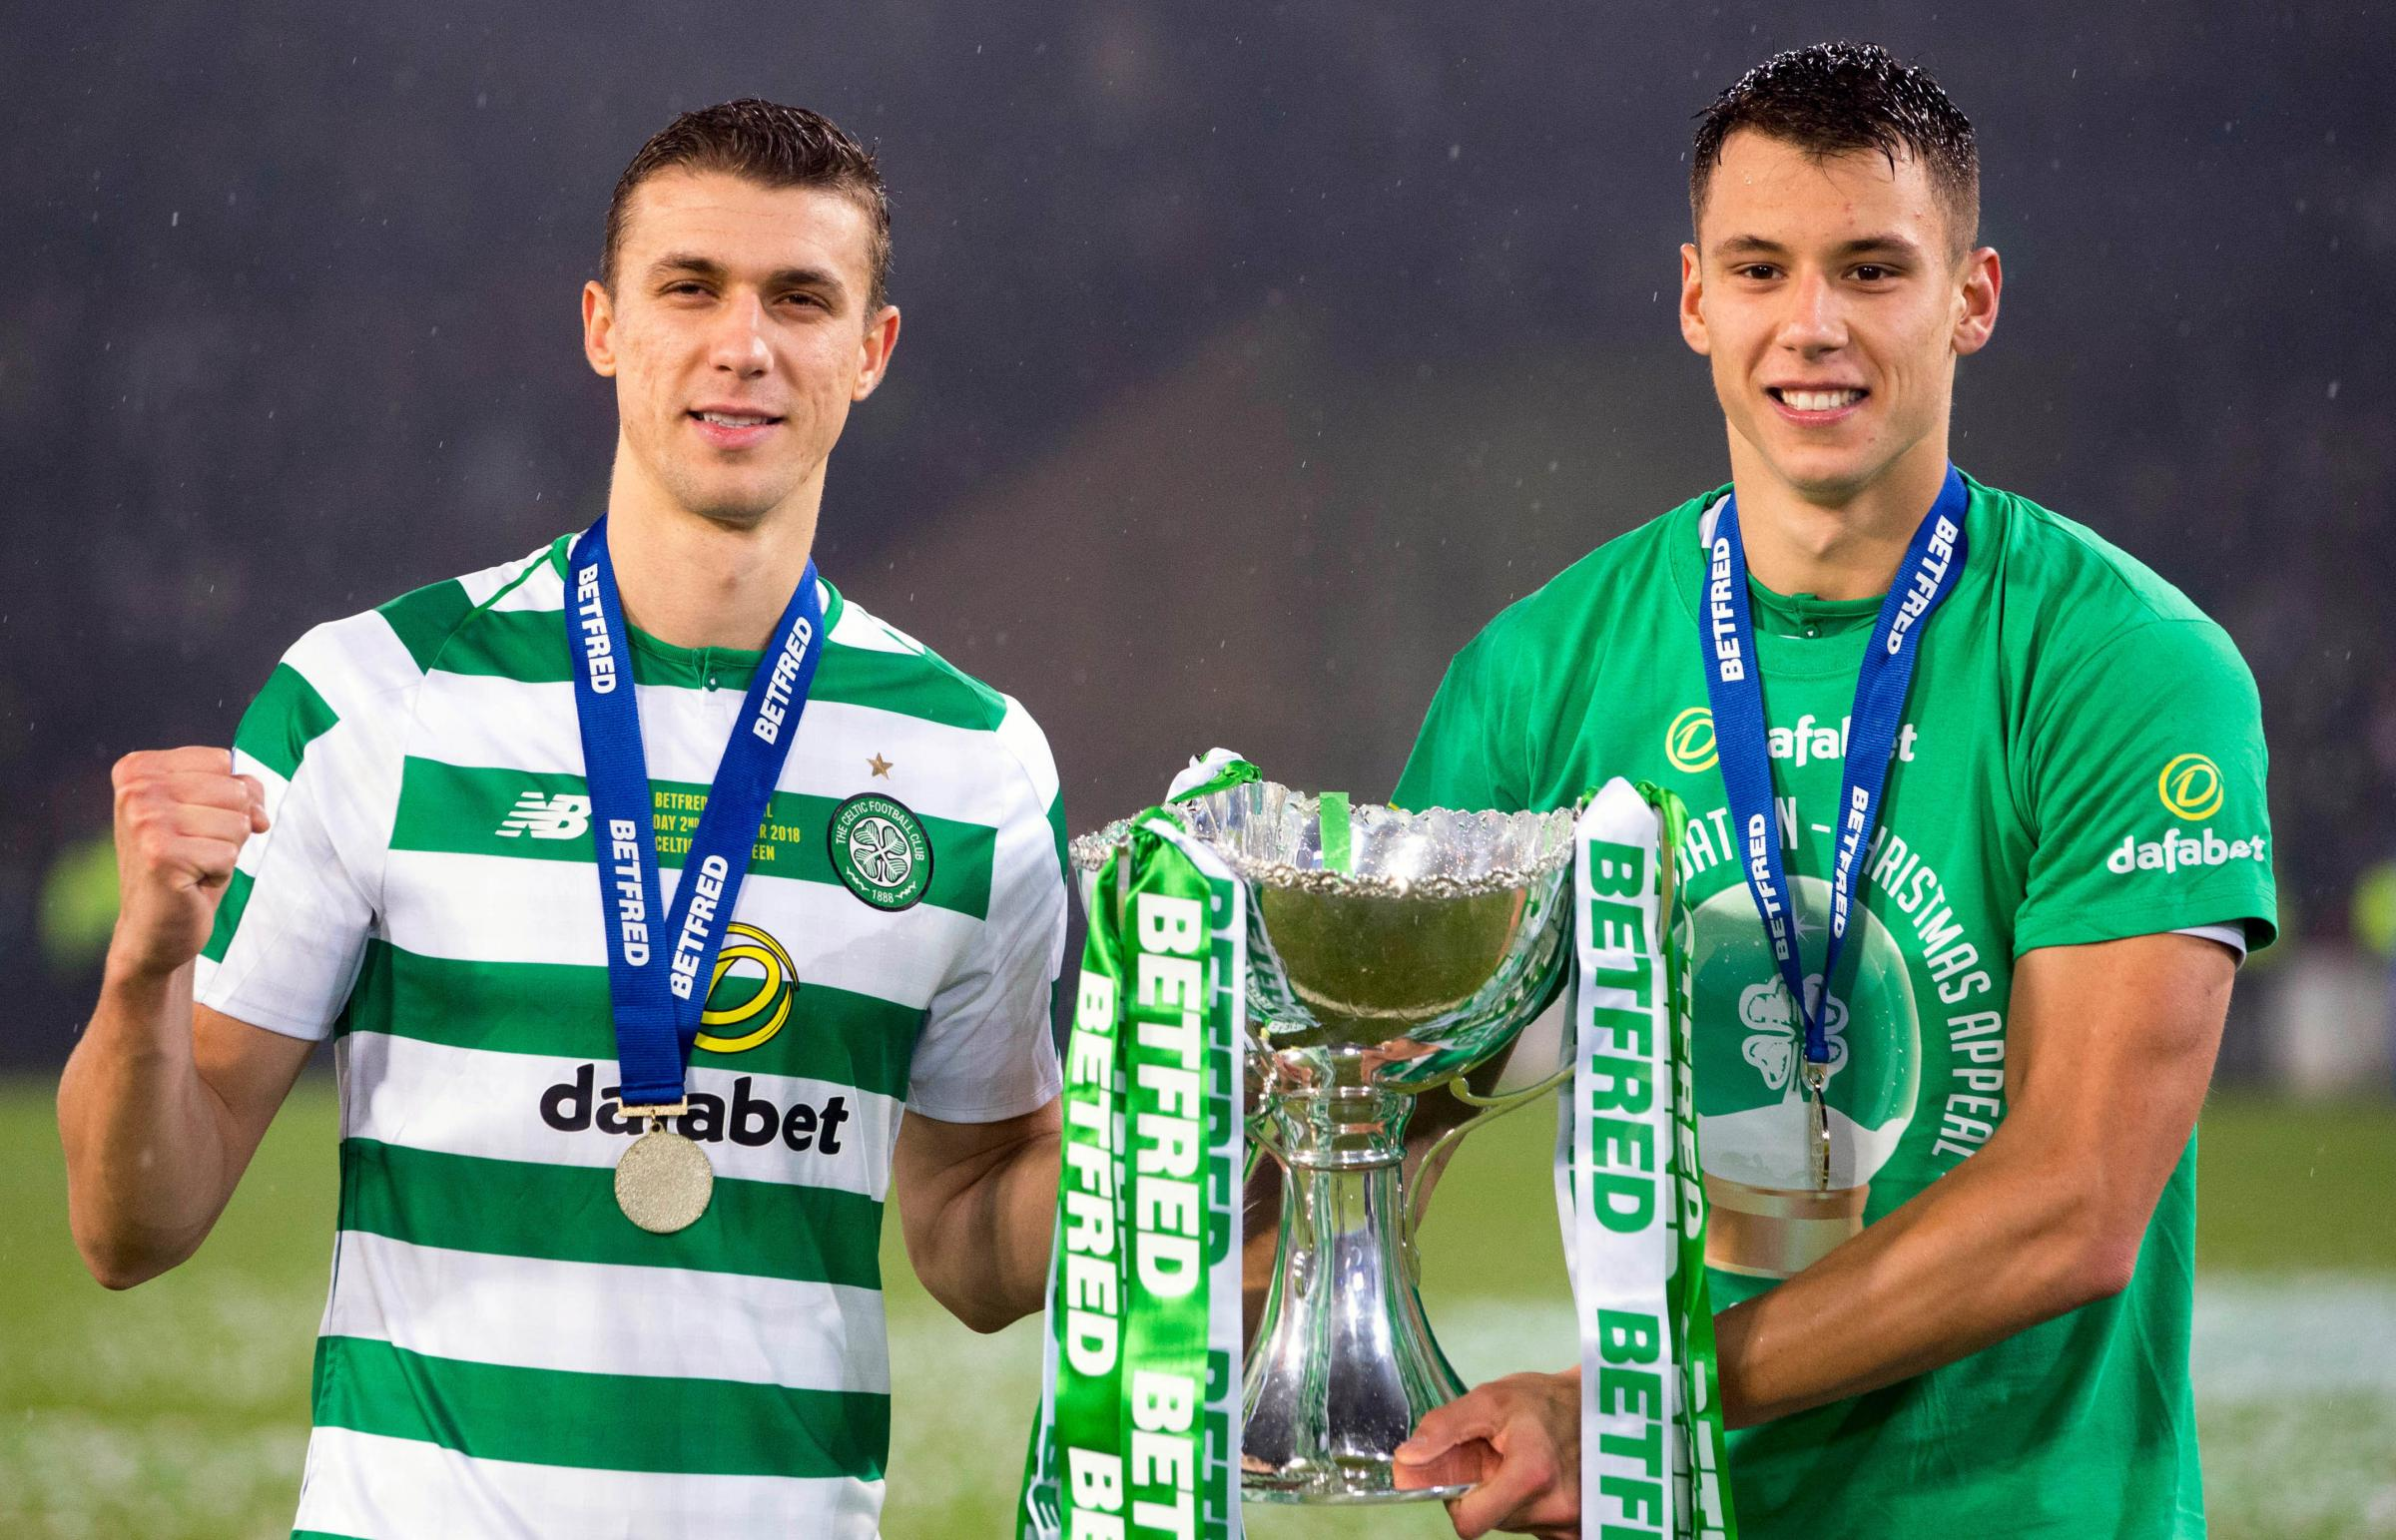 Celtic's Jozo Simunovic and Filip Benkovic lift cup during the Betfred Cup Final match at Hampden Park, Glasgow. PRESS ASSOCIATION Photo. Picture date: Sunday December 2, 2018. See PA story SOCCER Final. Photo credit should read: Jeff Holmes/PA Wire.